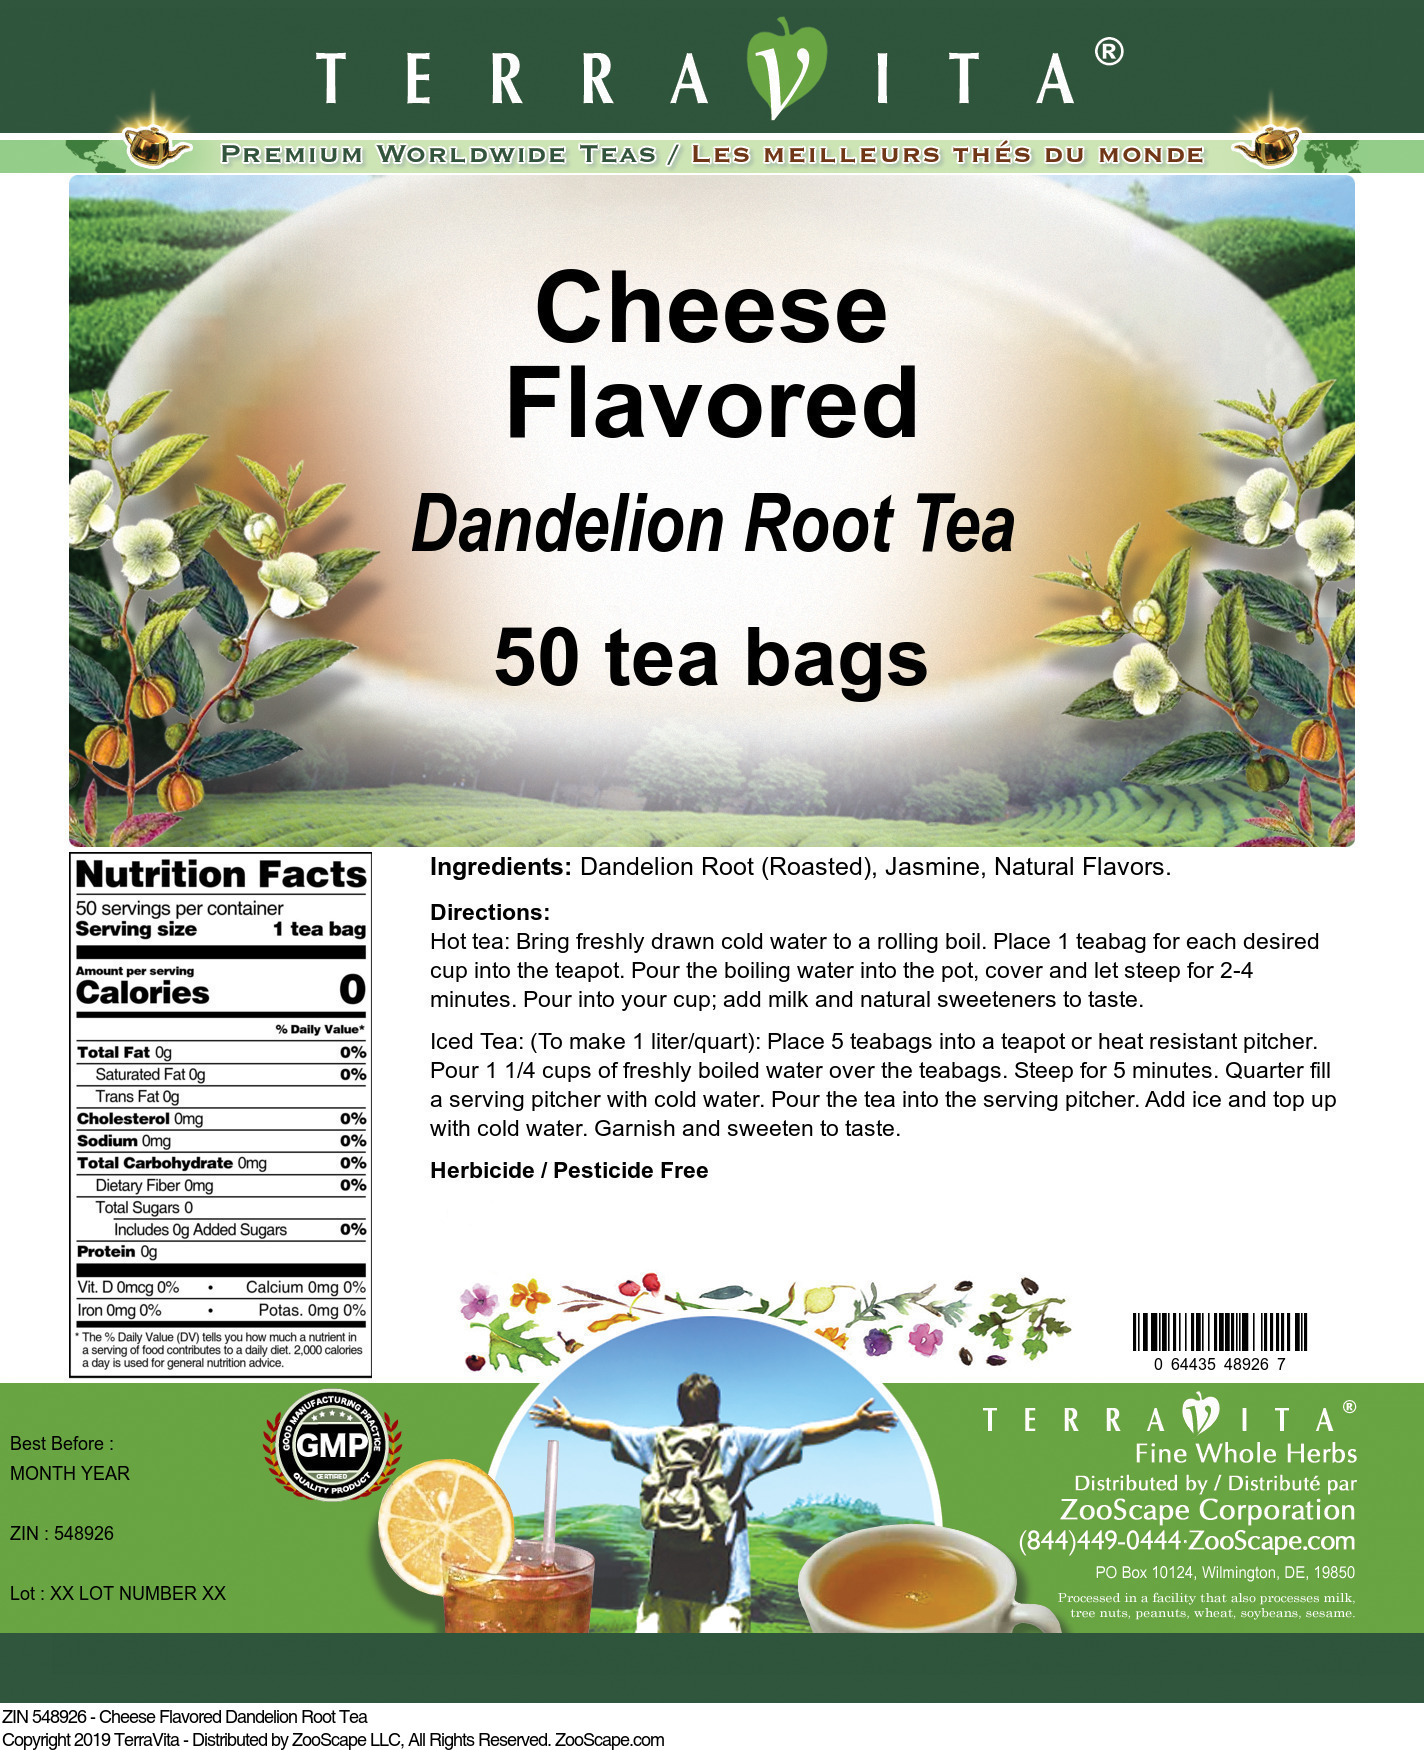 Cheese Flavored Dandelion Root